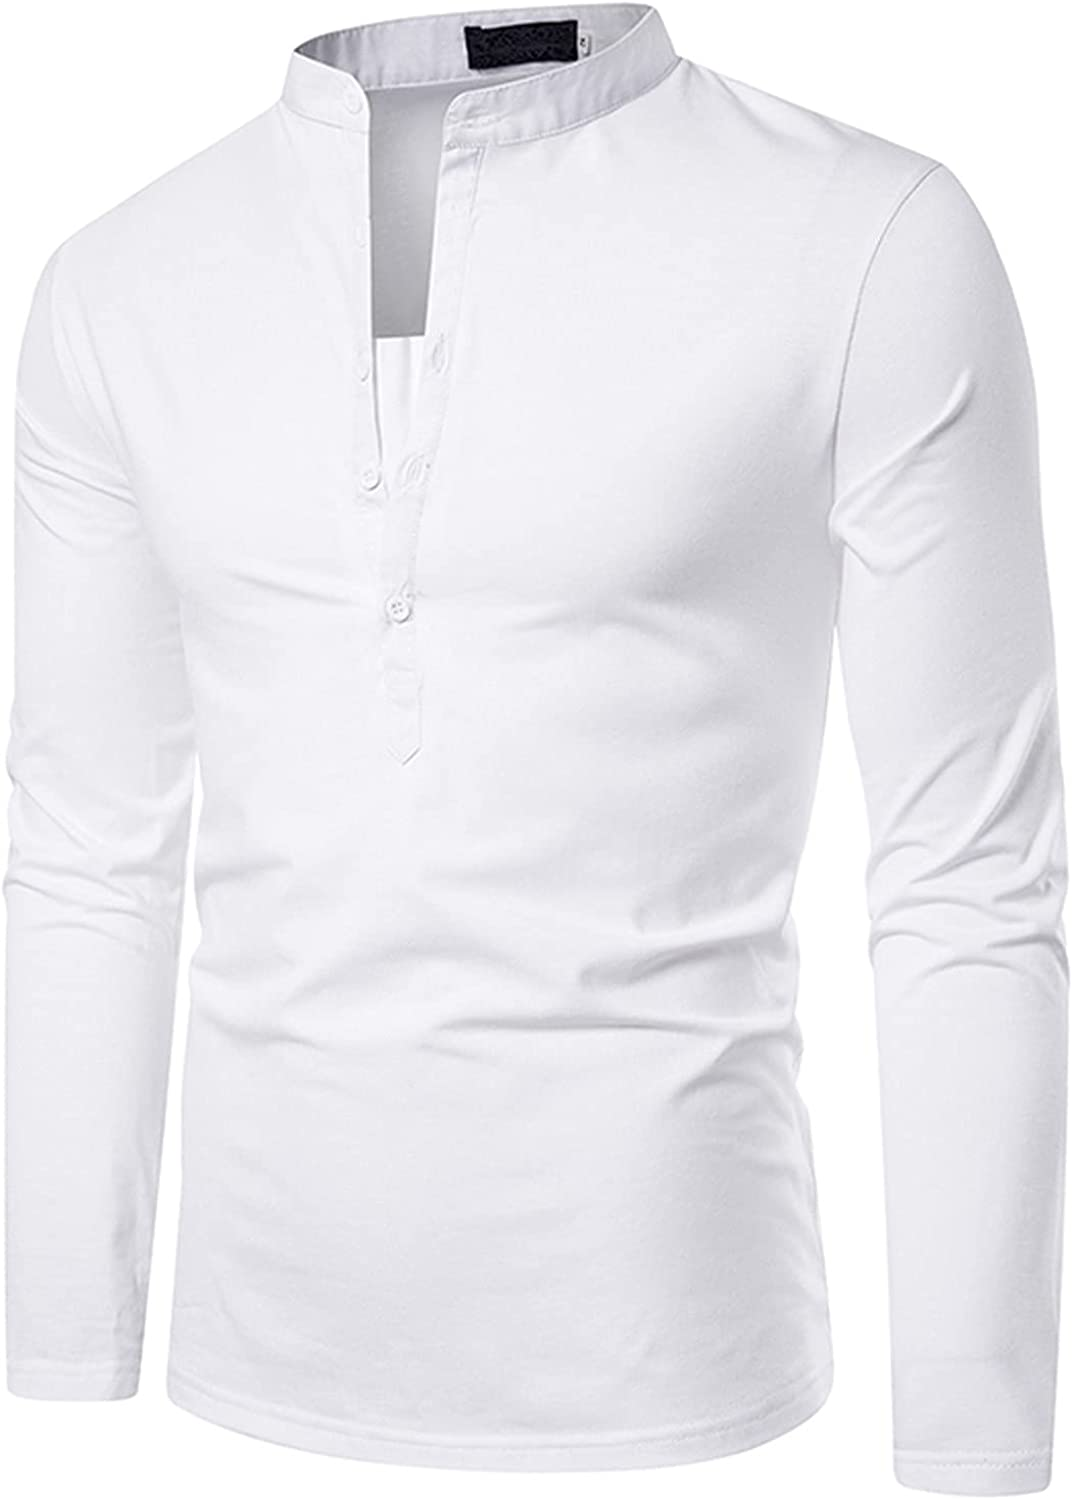 Men's Henley Shirt, Mens Casual Tailoring Double Placket Design Long-sleeved Button Shirts Autumn Casual Regular Fit Tops